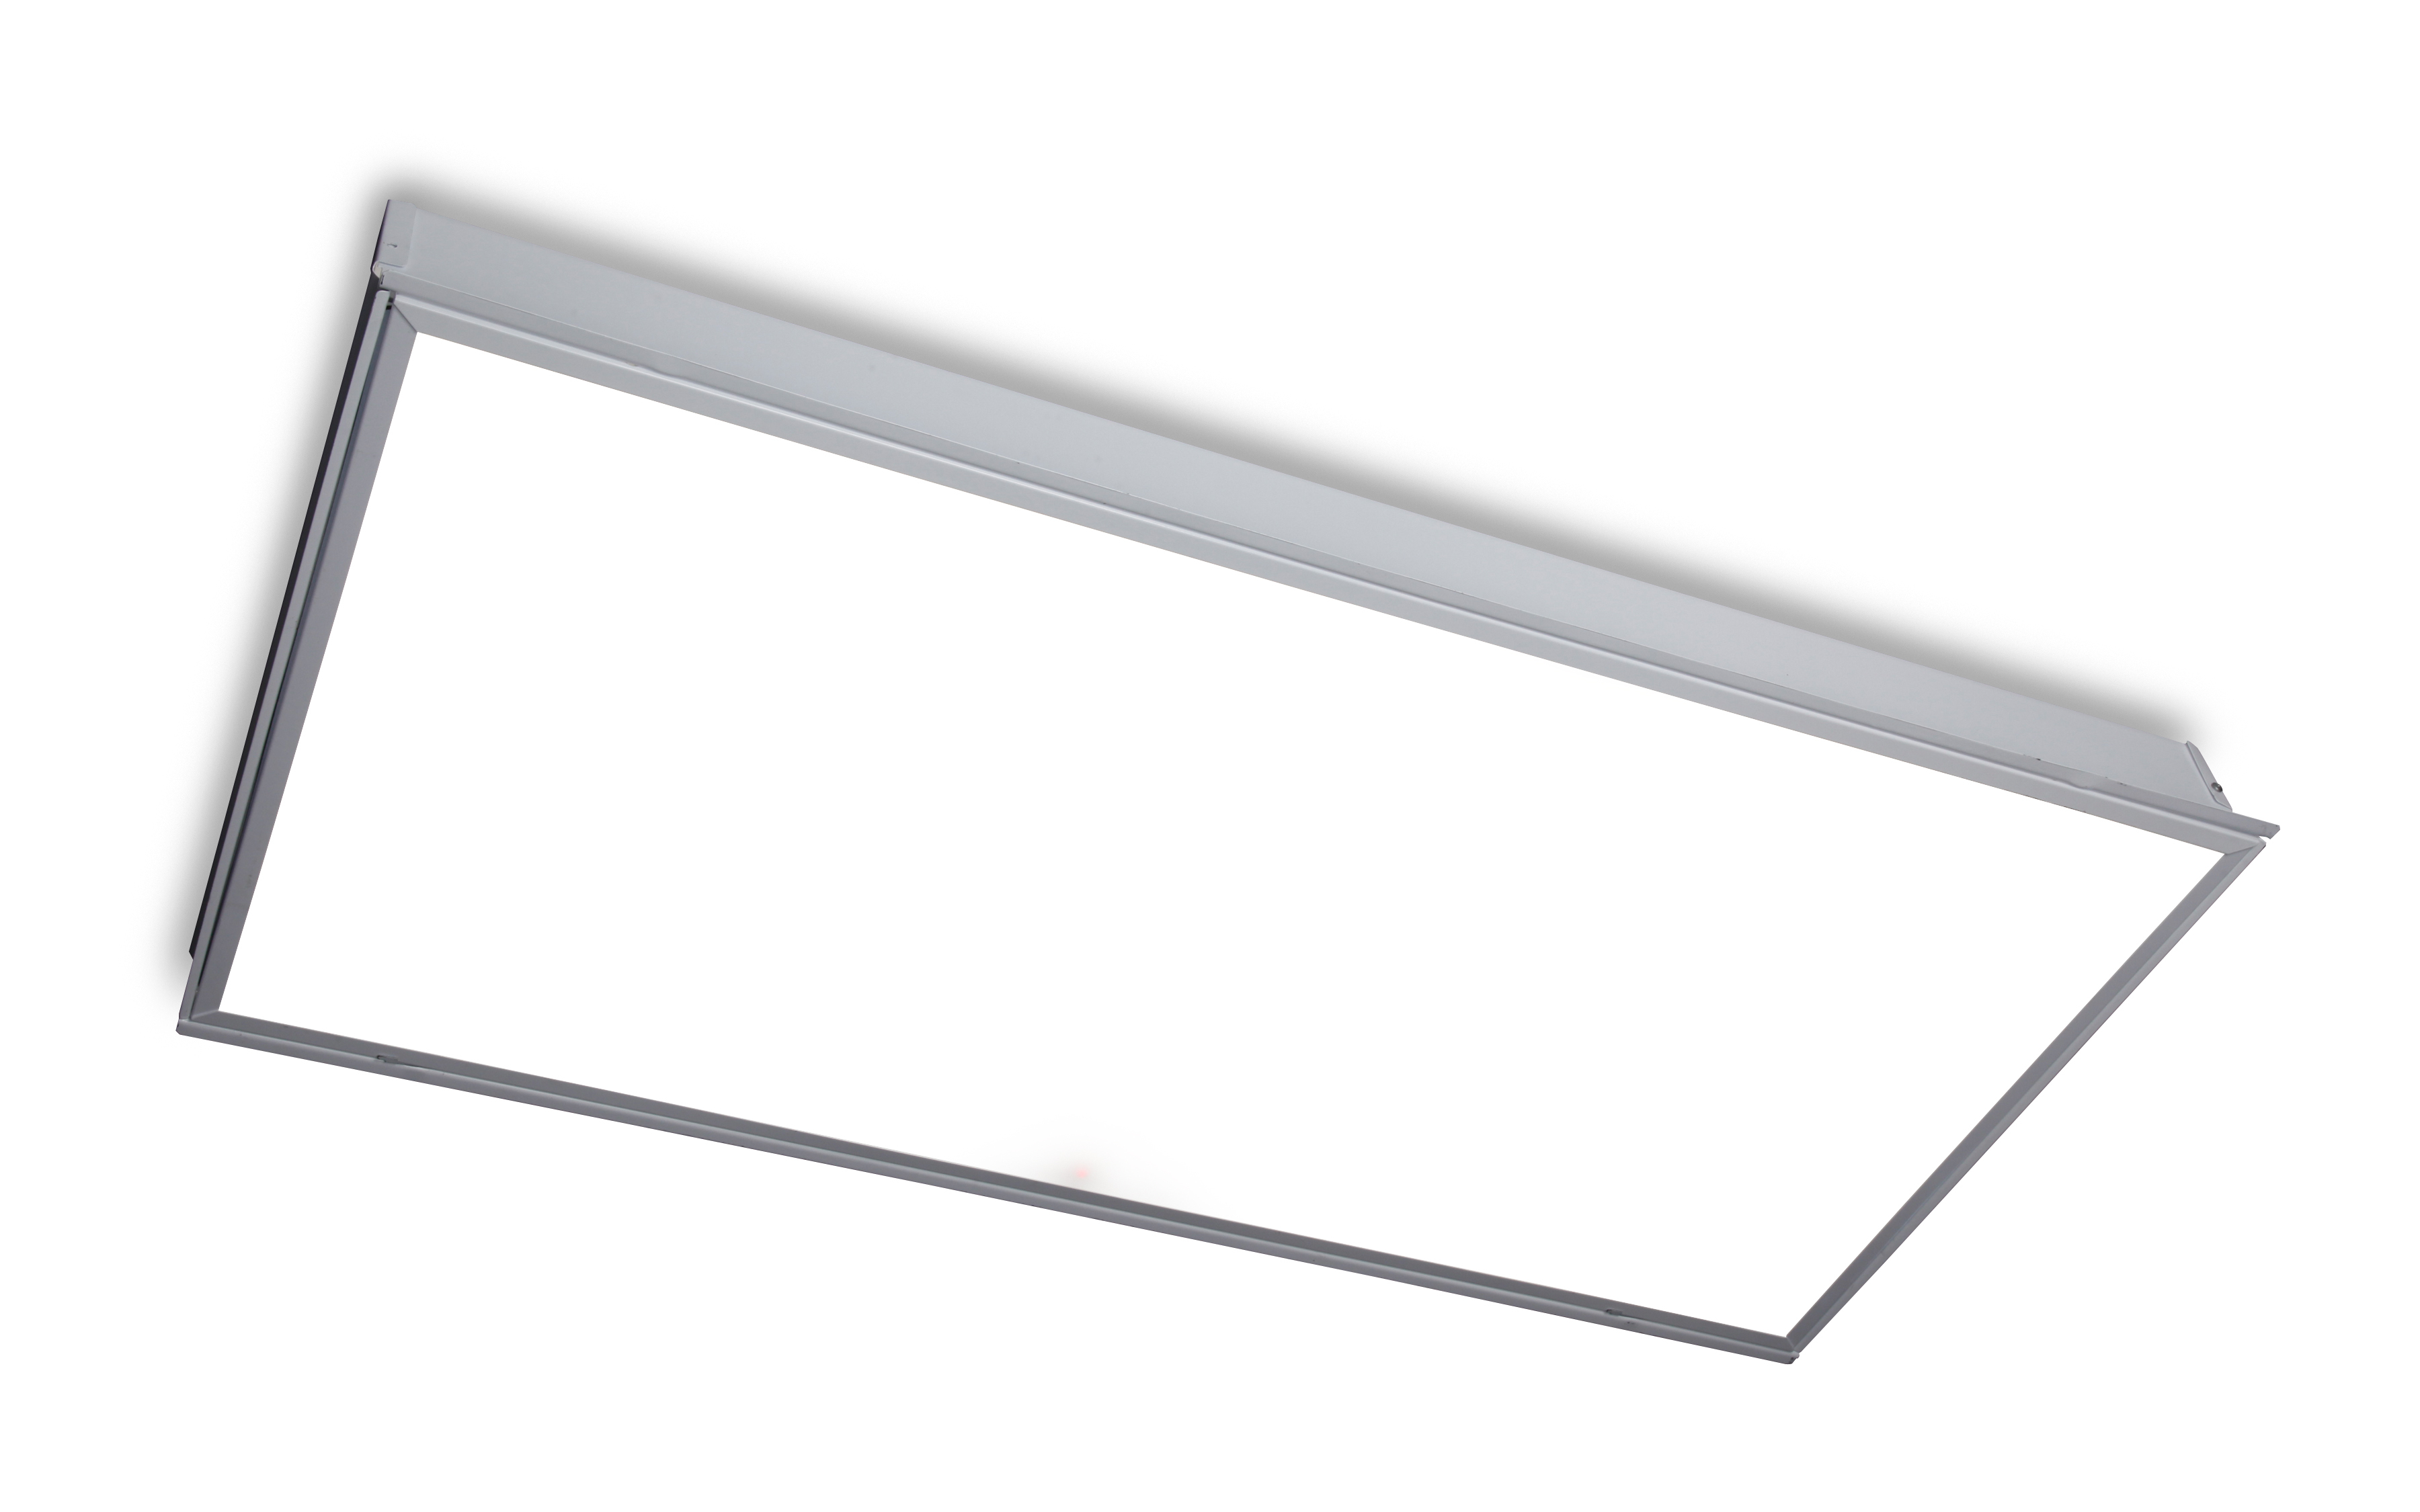 Ges lumination br series led luminaire provides clean uniform ges lumination br series led luminaire provides clean uniform lighting with dimming capabilities for commercial ceilings business wire aloadofball Images